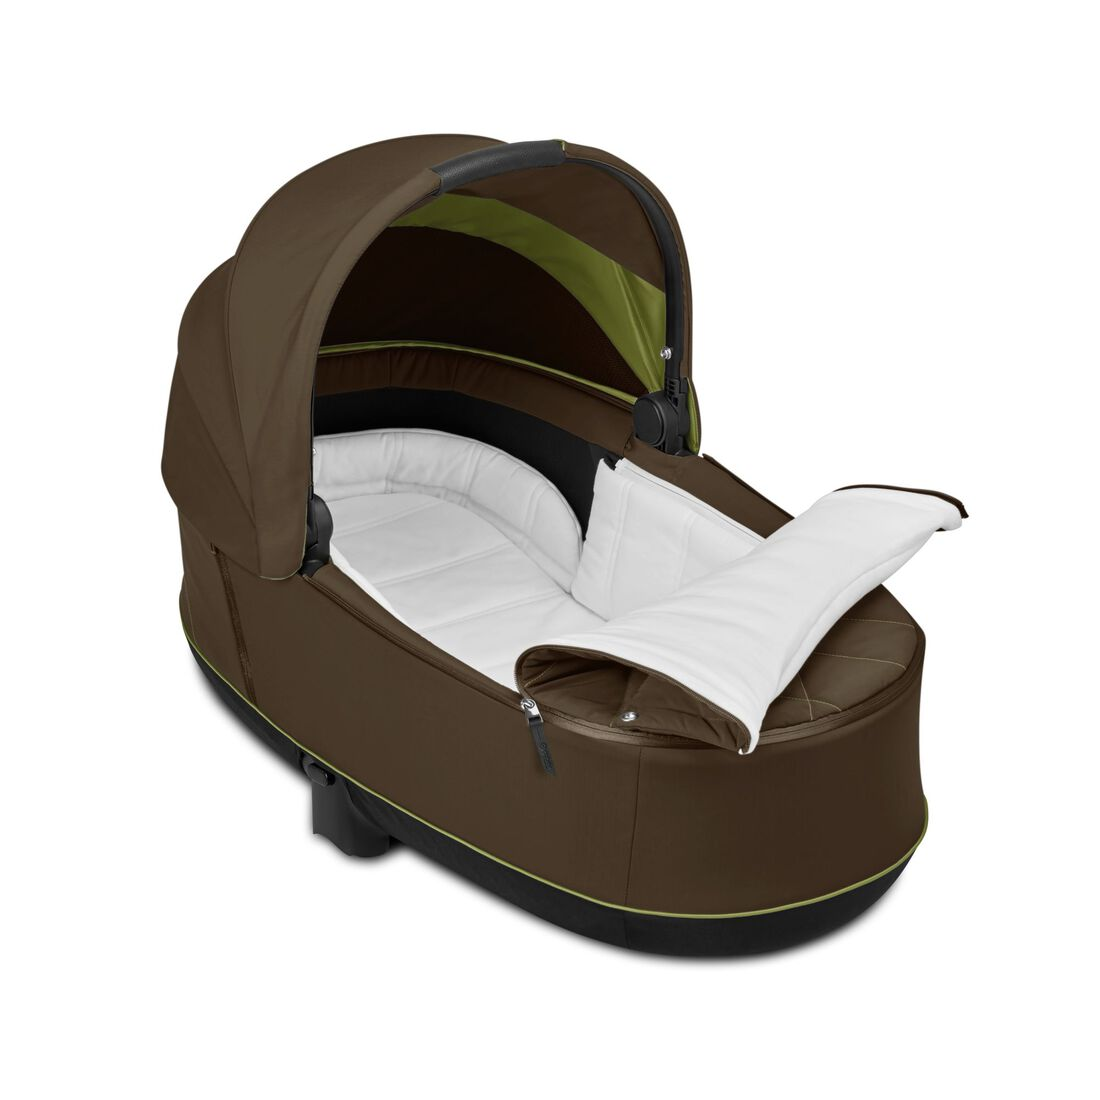 CYBEX Priam Lux Carry Cot - Khaki Green in Khaki Green large image number 3